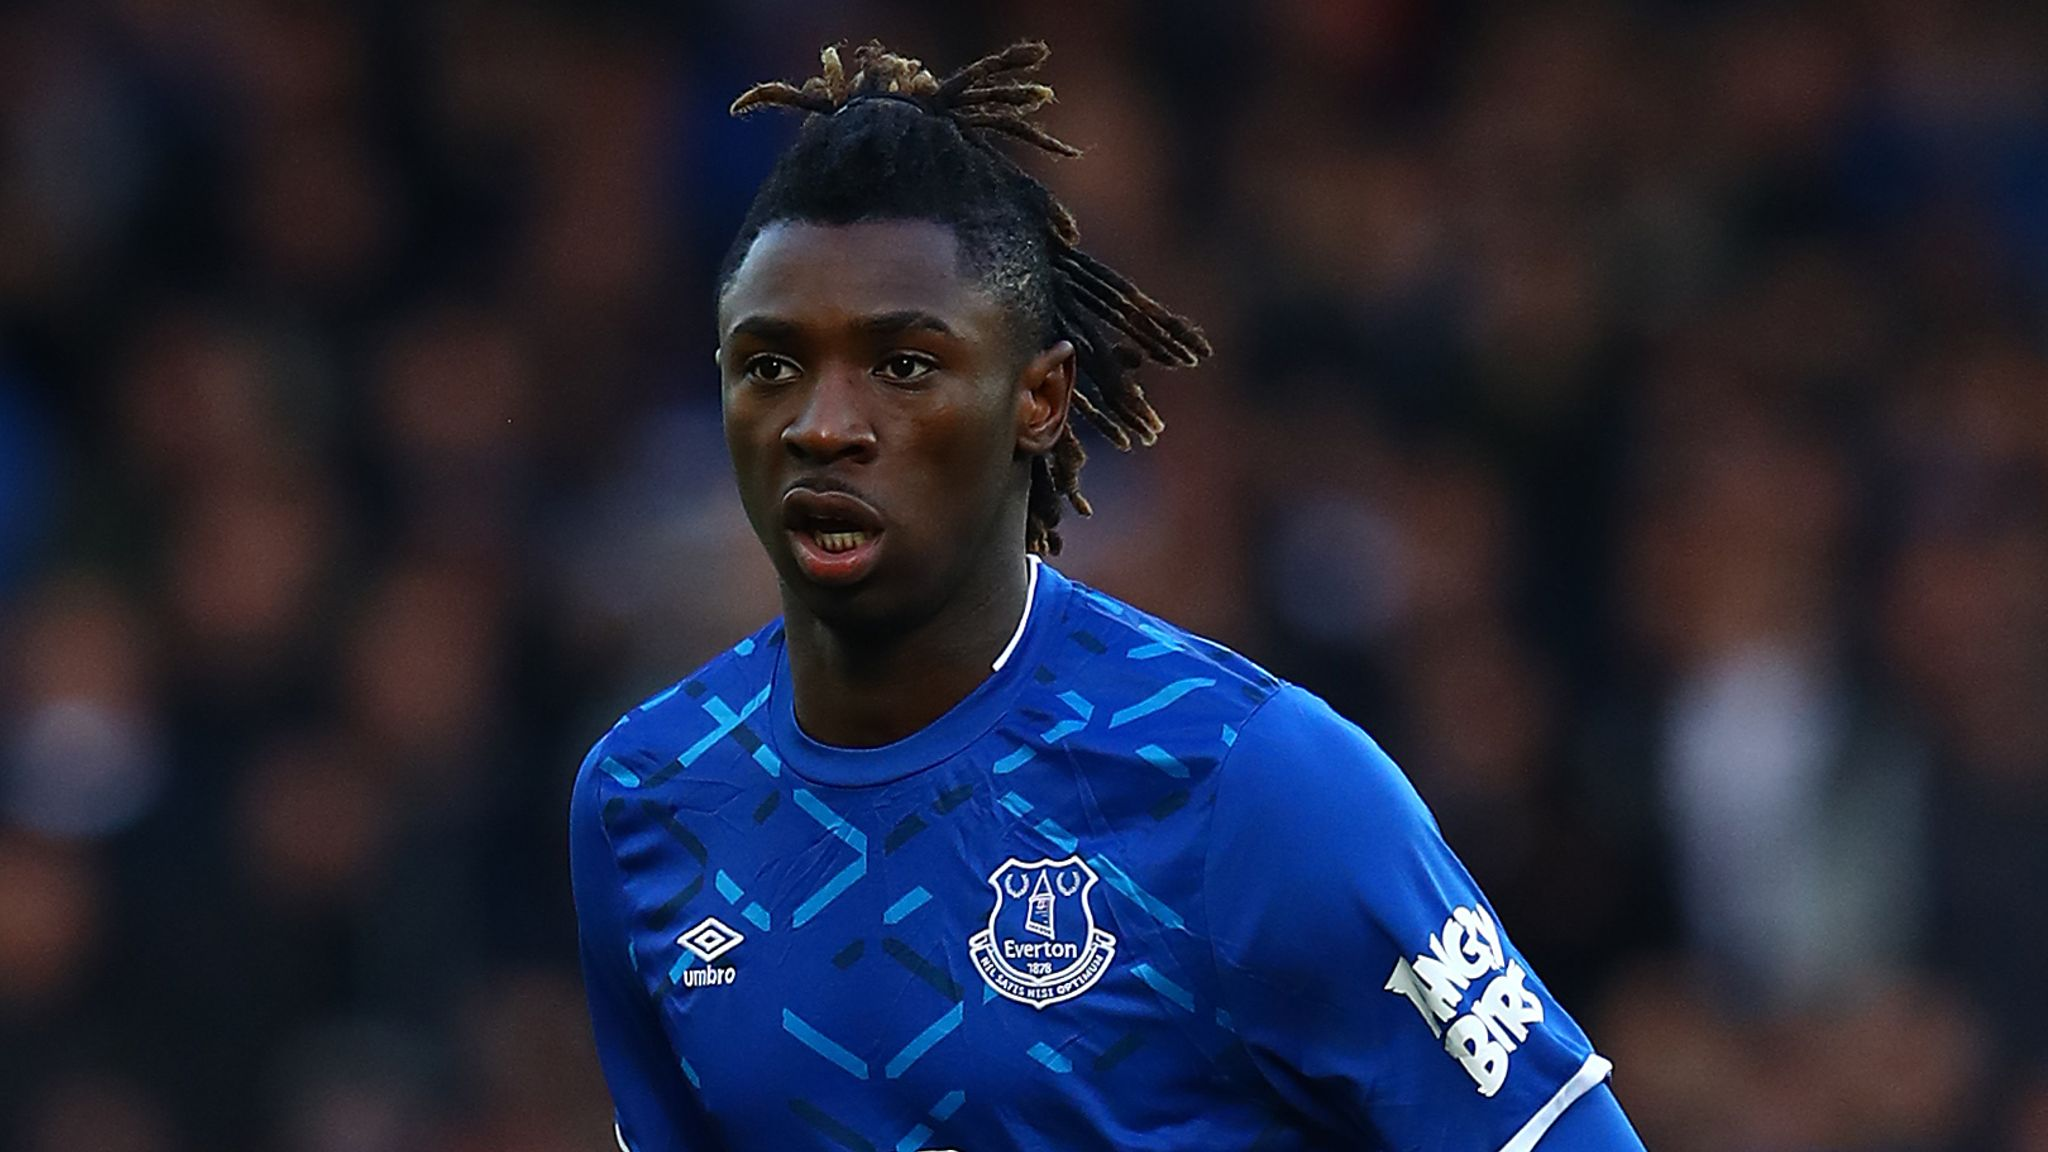 Coronavirus Moise Kean Condemned By Everton After Apparent Breach Of Guidelines Football News Sky Sports